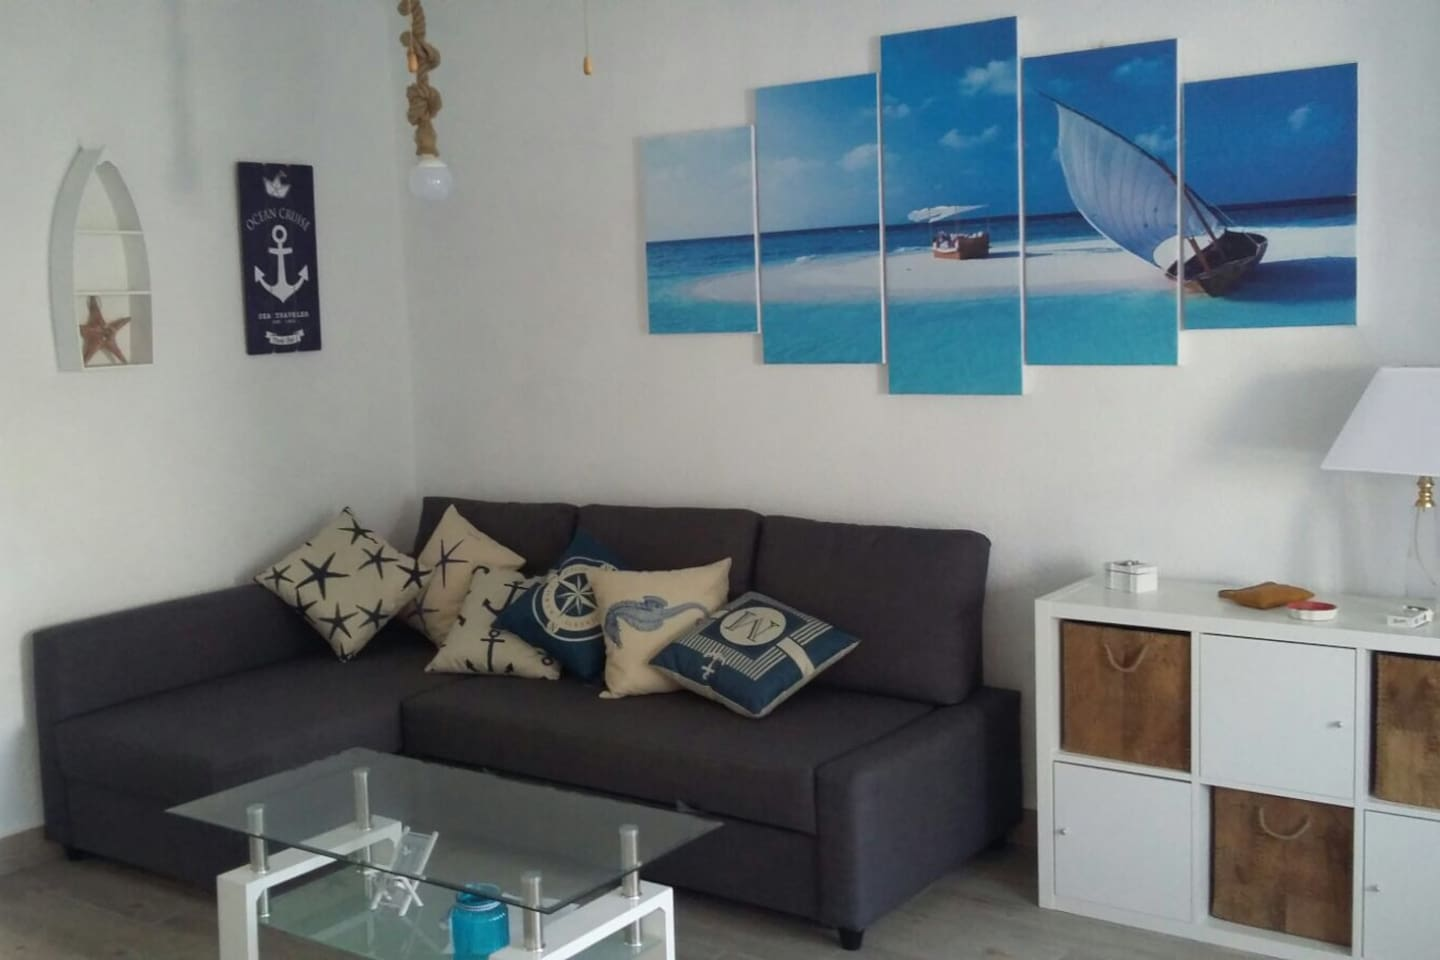 Muebles Beatriz Torrevieja - Vacaciones C Soria Apartments For Rent In Torrevieja Comunidad [mjhdah]https://a0.muscache.com/im/pictures/5214a29b-2814-48a4-b356-a9171ad920ea.jpg?aki_policy=xx_large